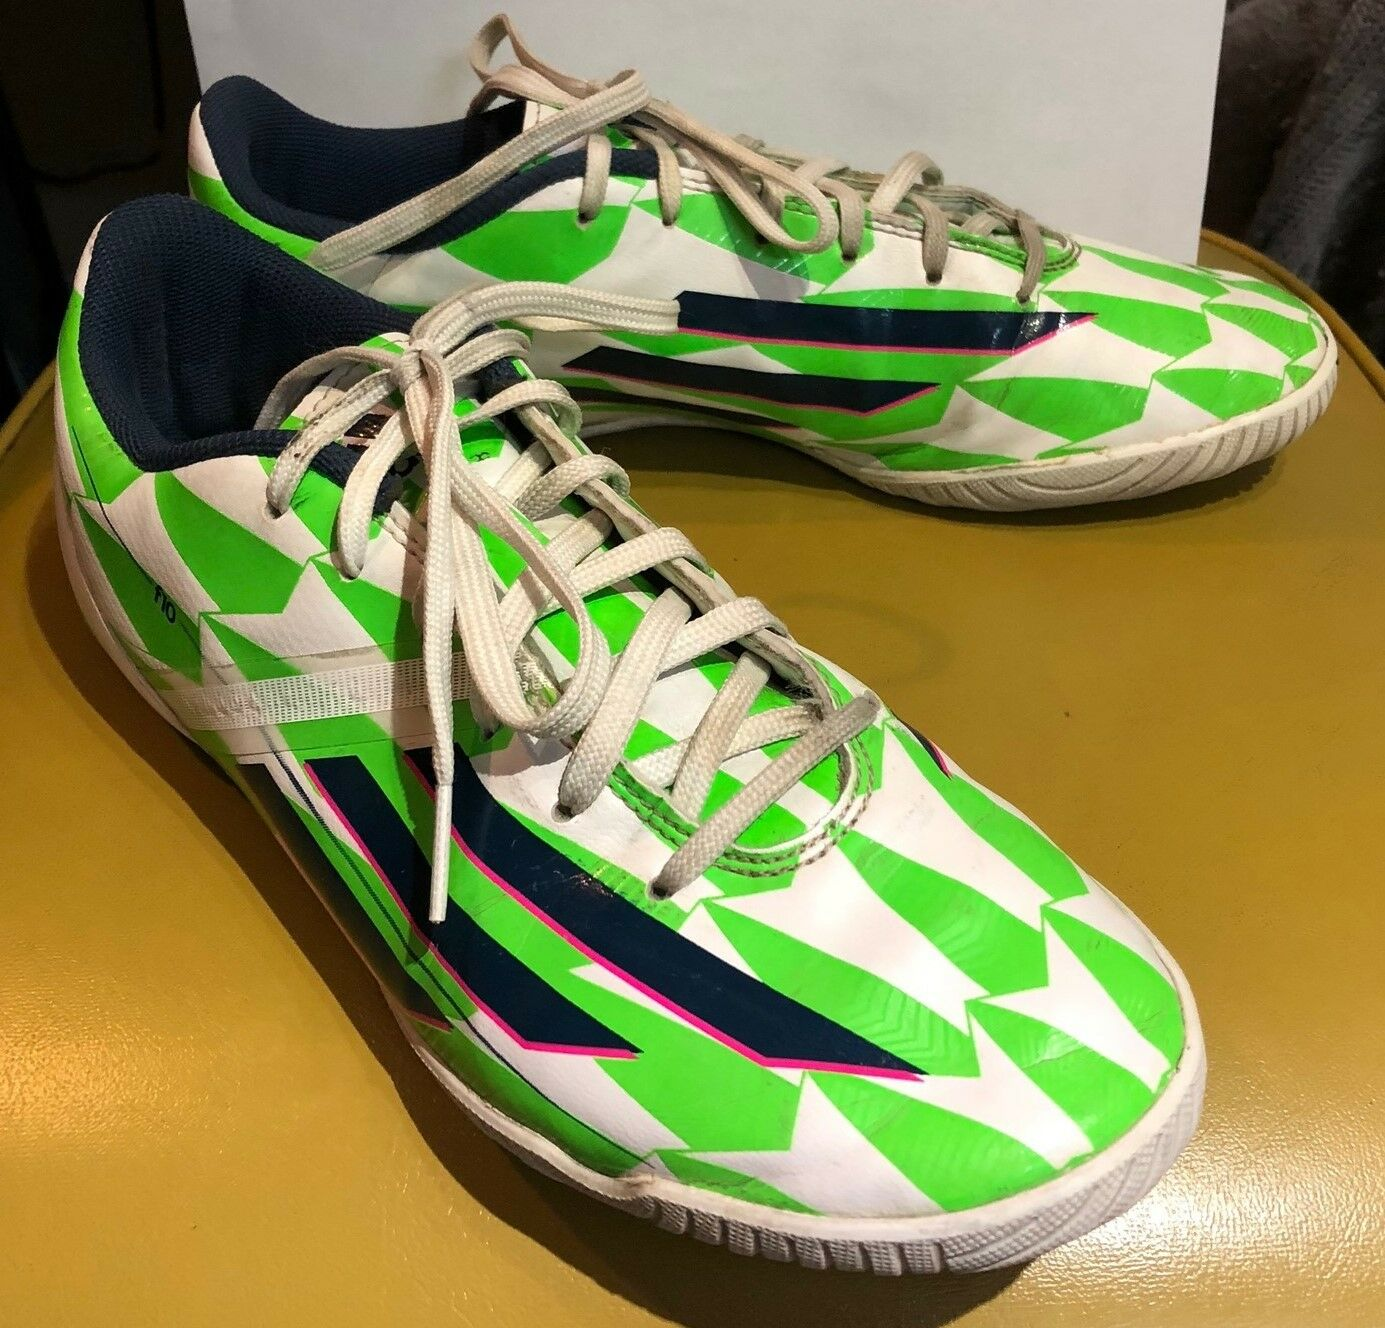 ADIDAS F10 SHOES MEN'S INDOOR SOCCER SHOES F10 SIZE 8.5 Green White d930e1